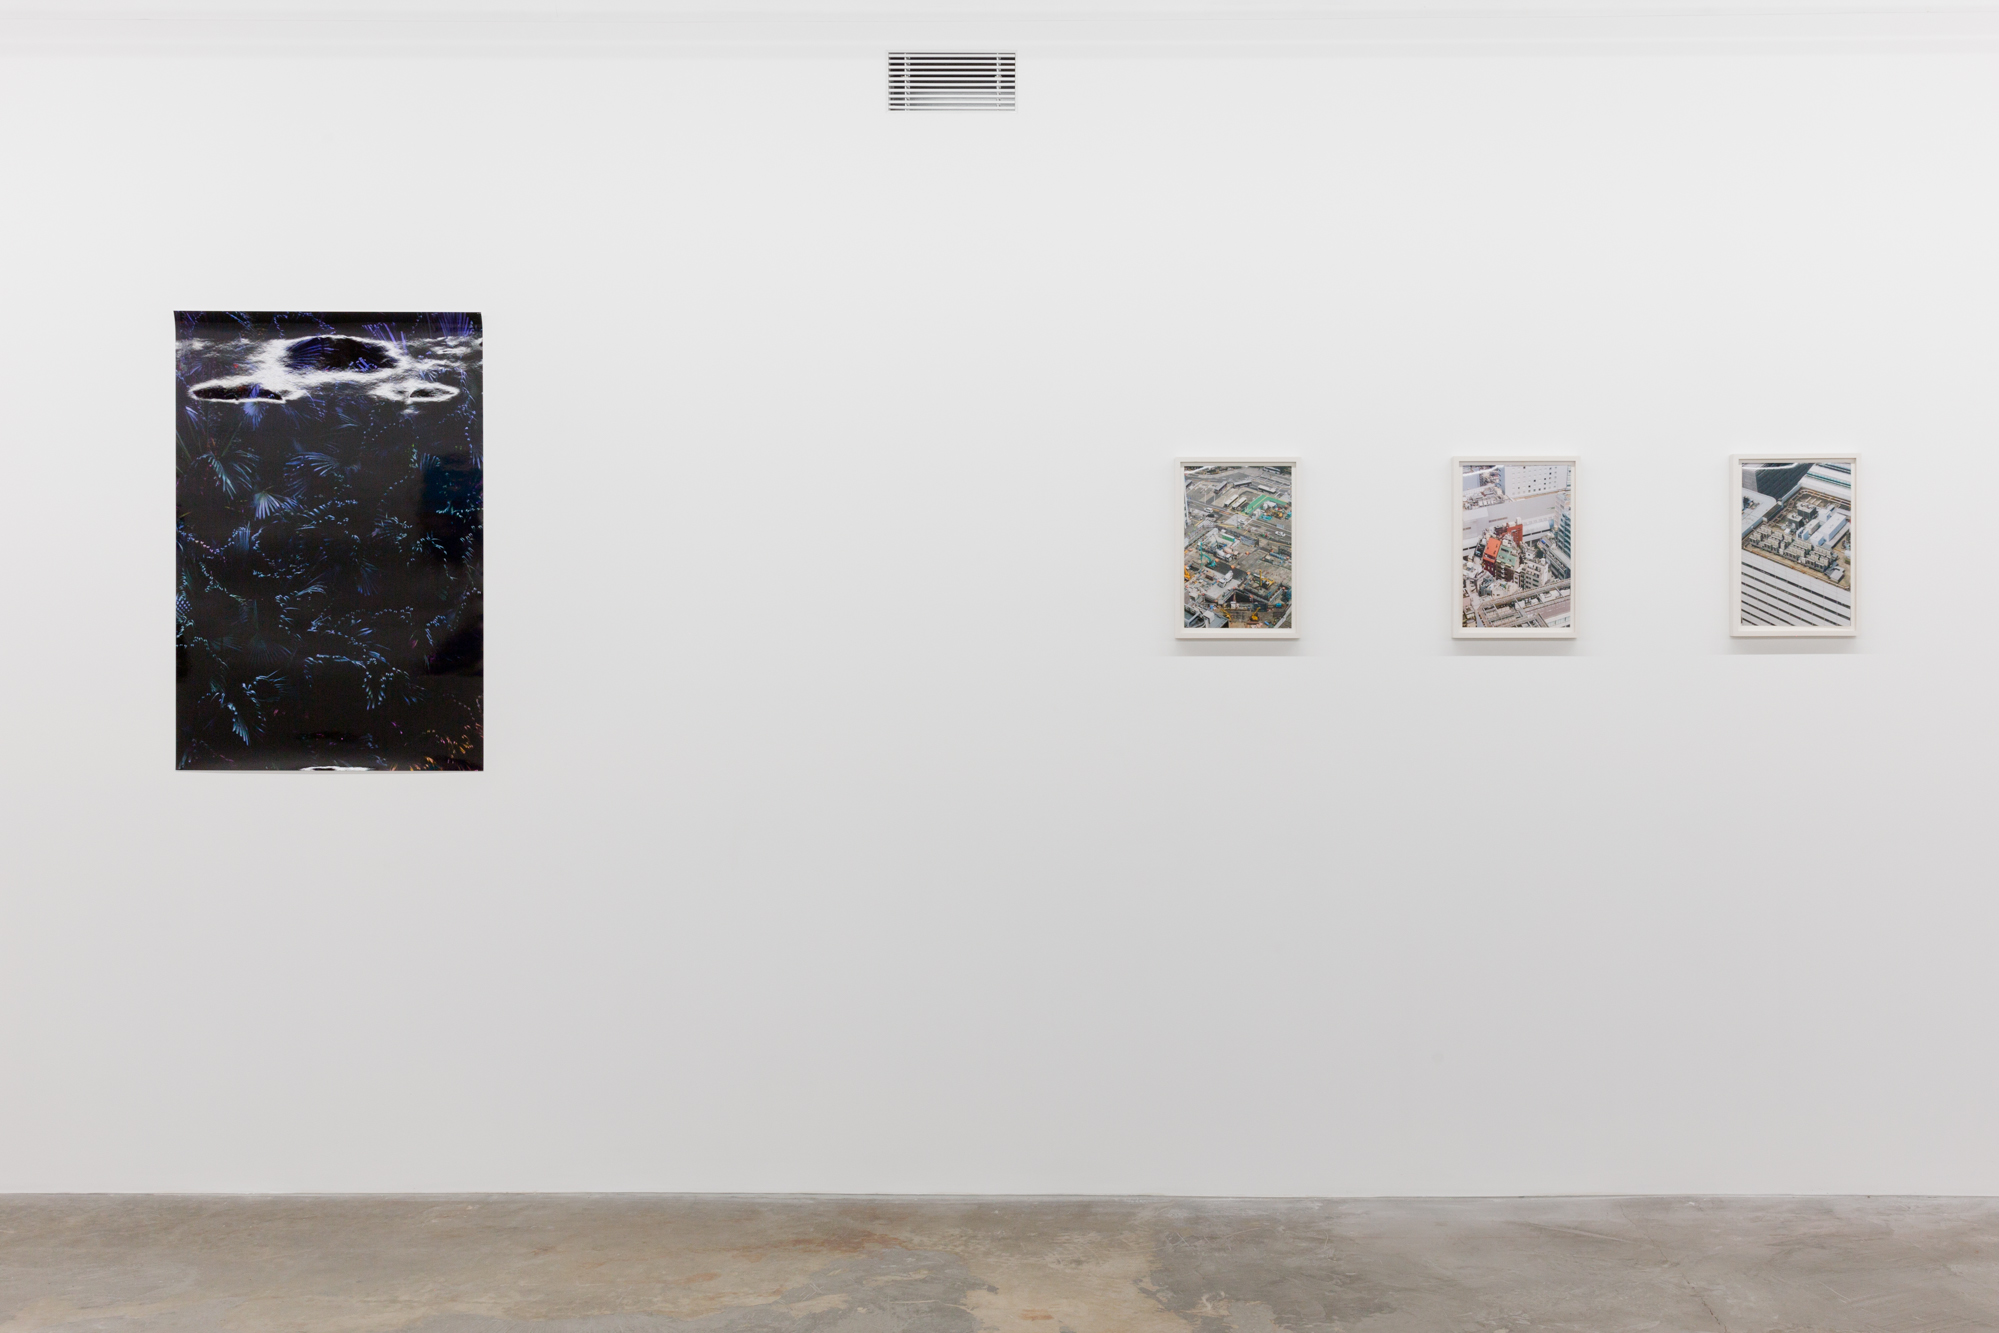 Daniel Terna and Evan Whale_LY Gallery_Exhibition Views_Daniel Terna_2019_websize-15.jpg